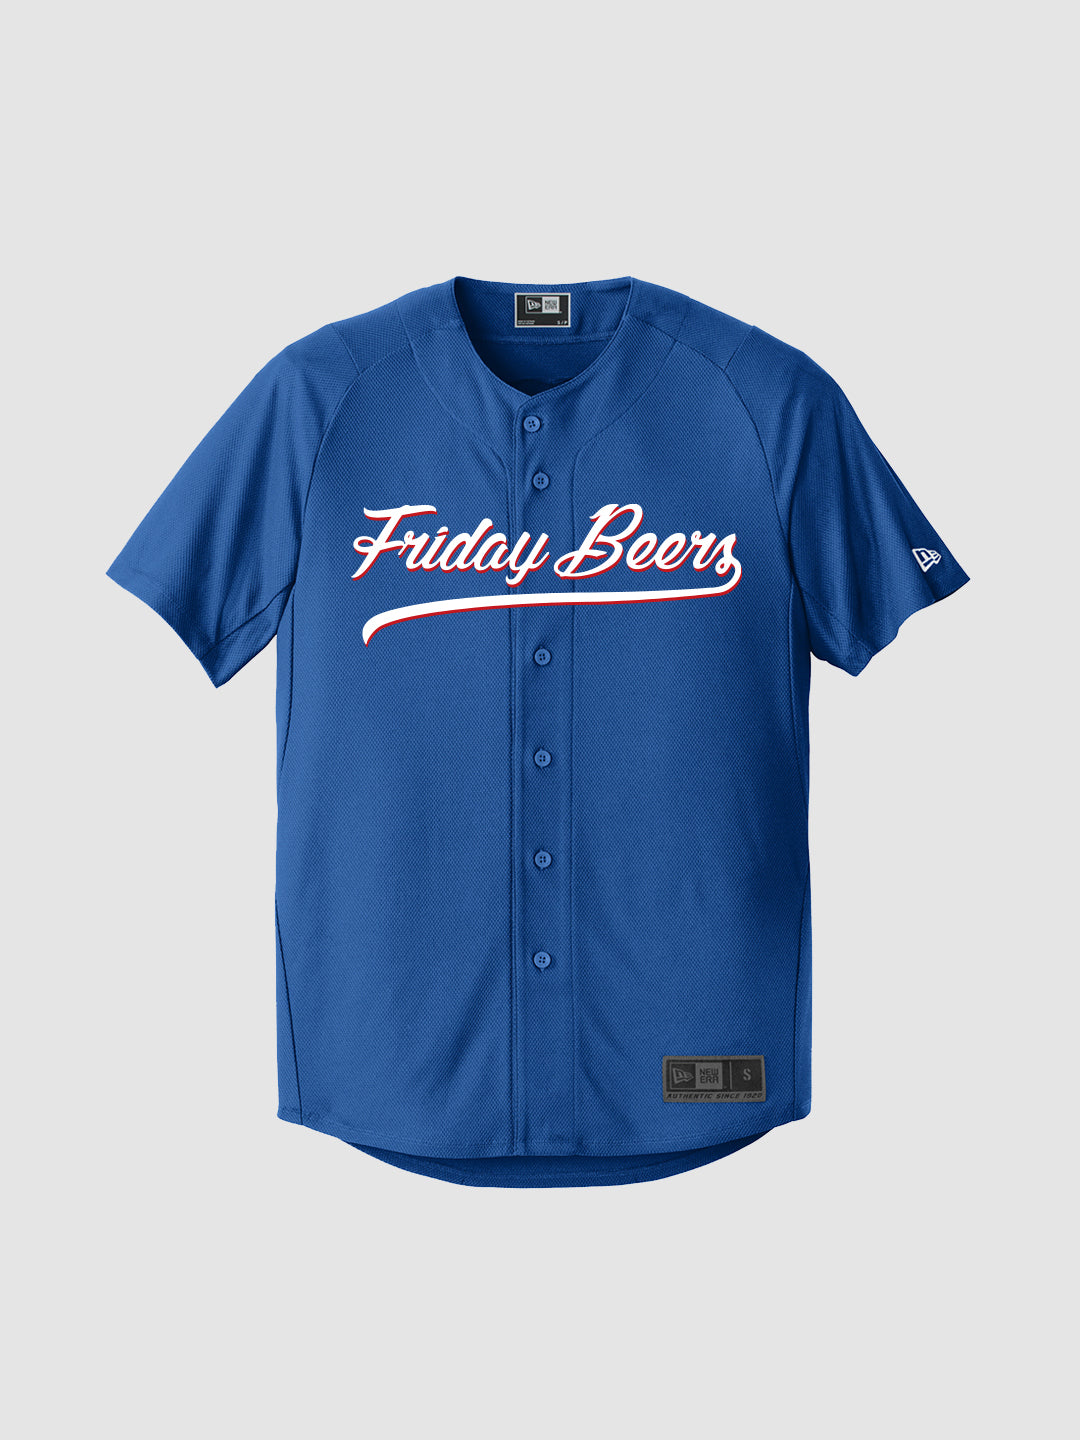 Friday Beers New Era Baseball Jersey Blue